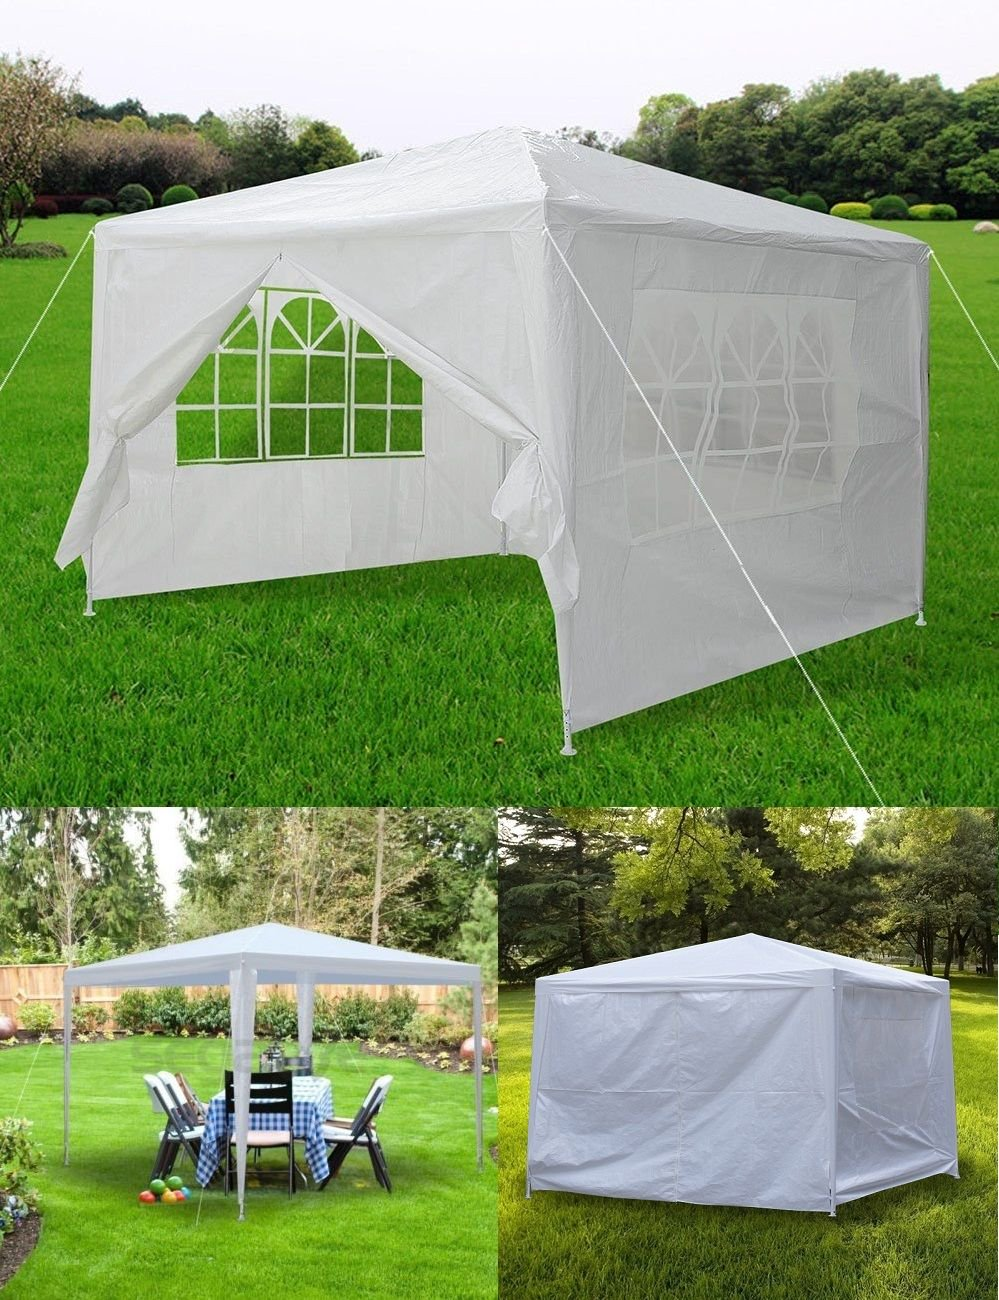 Zeny 10u0027 x 10u0027 White outdoor Wedding Party Tent patio Gazebo Canopy with Side  sc 1 st  Walmart : white outdoor canopy tent - memphite.com